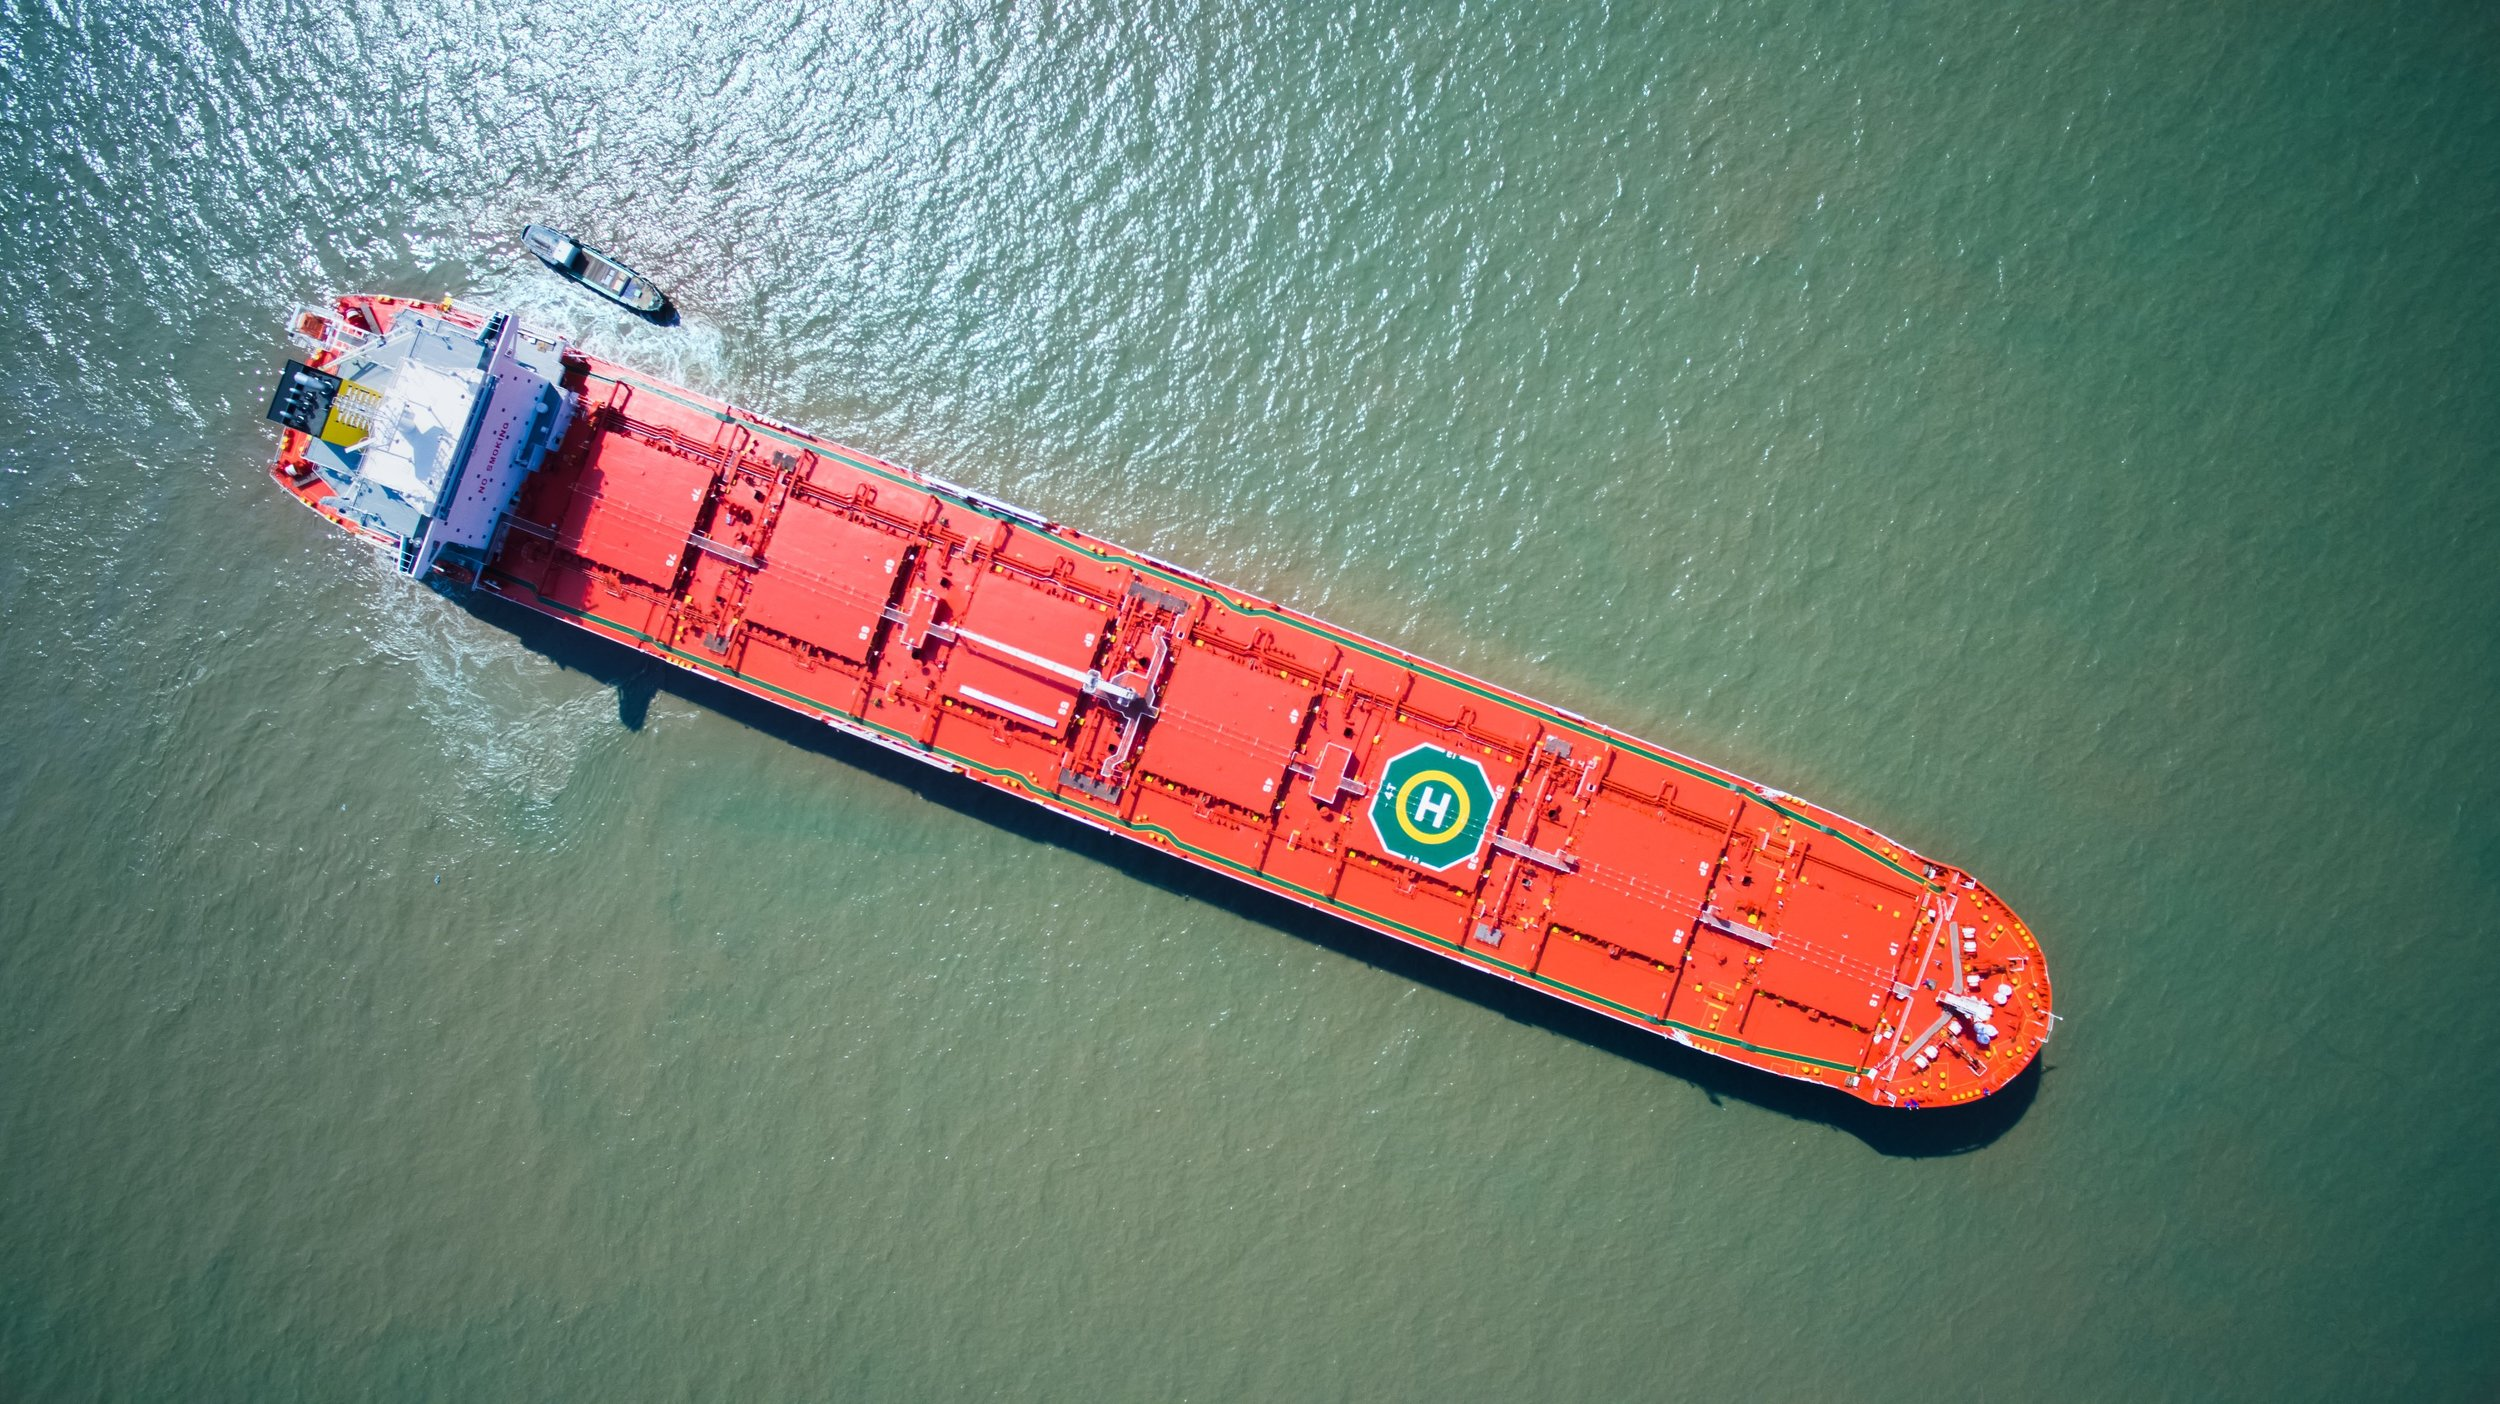 The combination carrier MV Balboa has been built for transporting both wet and dry cargo to minimize ballast, effectively reducing emissions per transported ton of cargo.